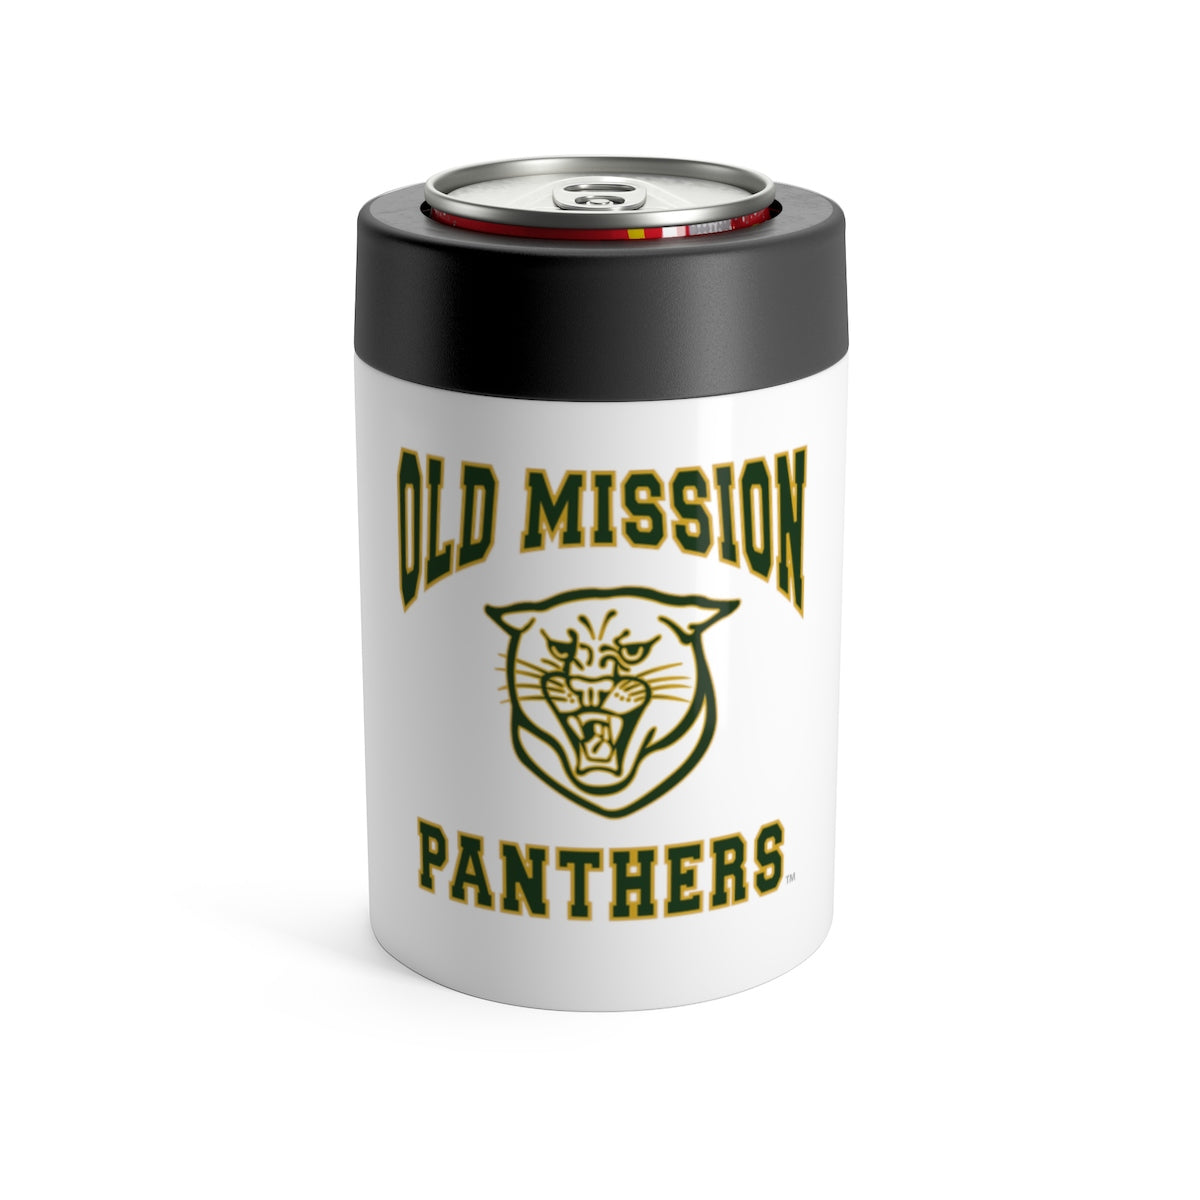 Old Mission Panthers White Stainless Steel Can Holder